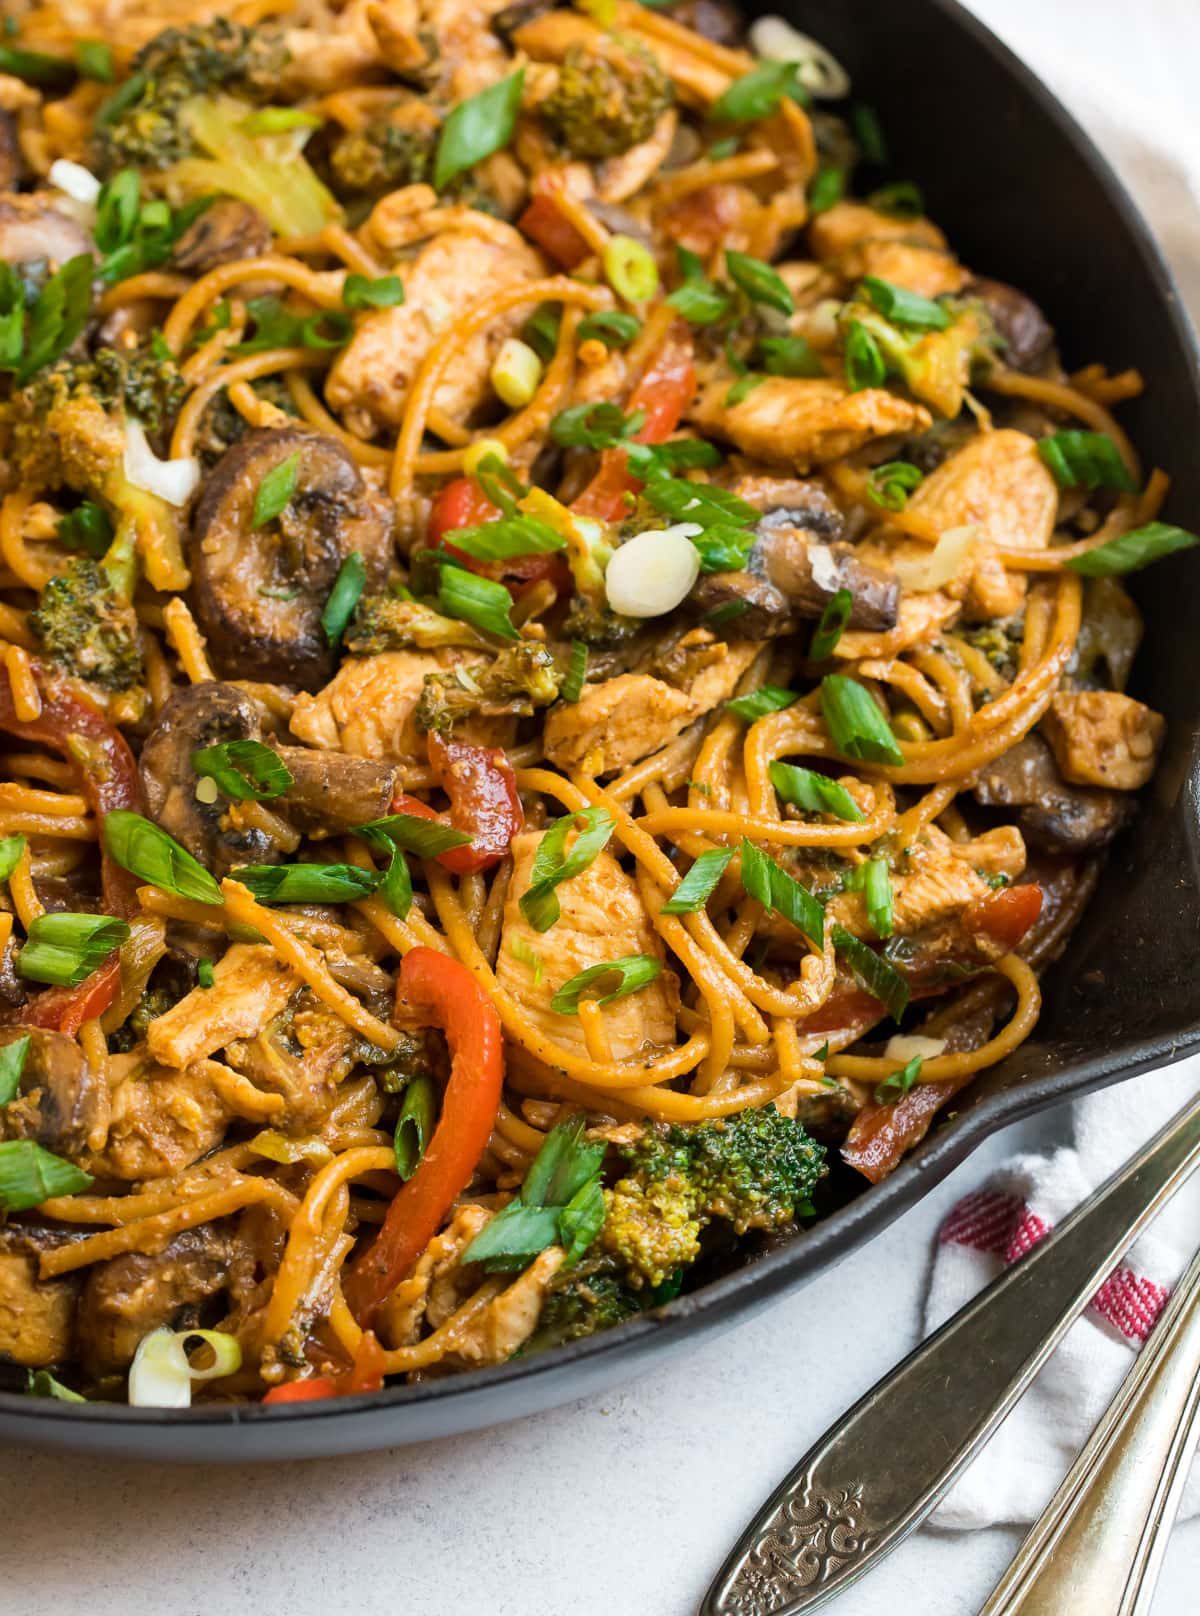 Easy noodle stir fry with veggies